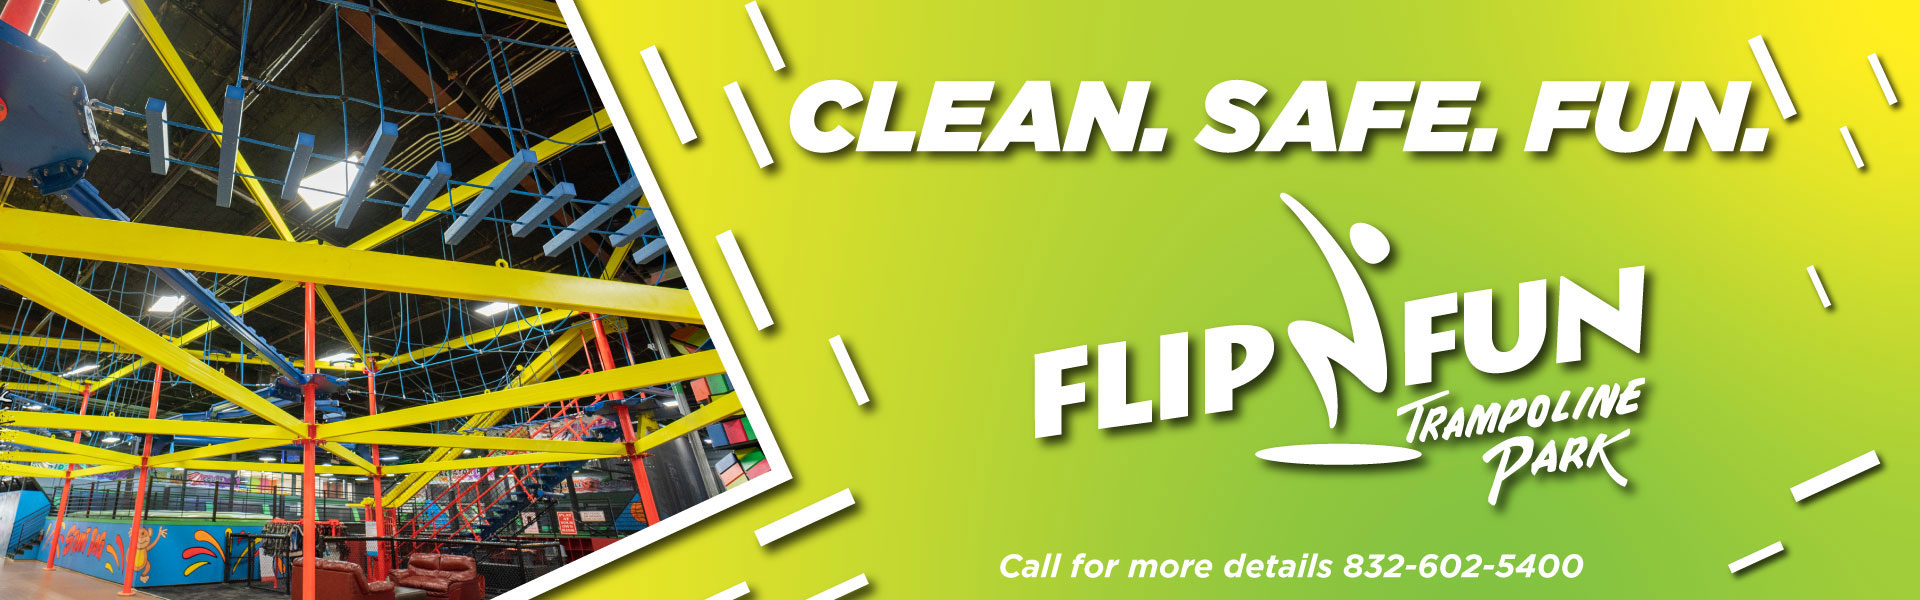 flip-n-fun-2020-clean-safe-fun